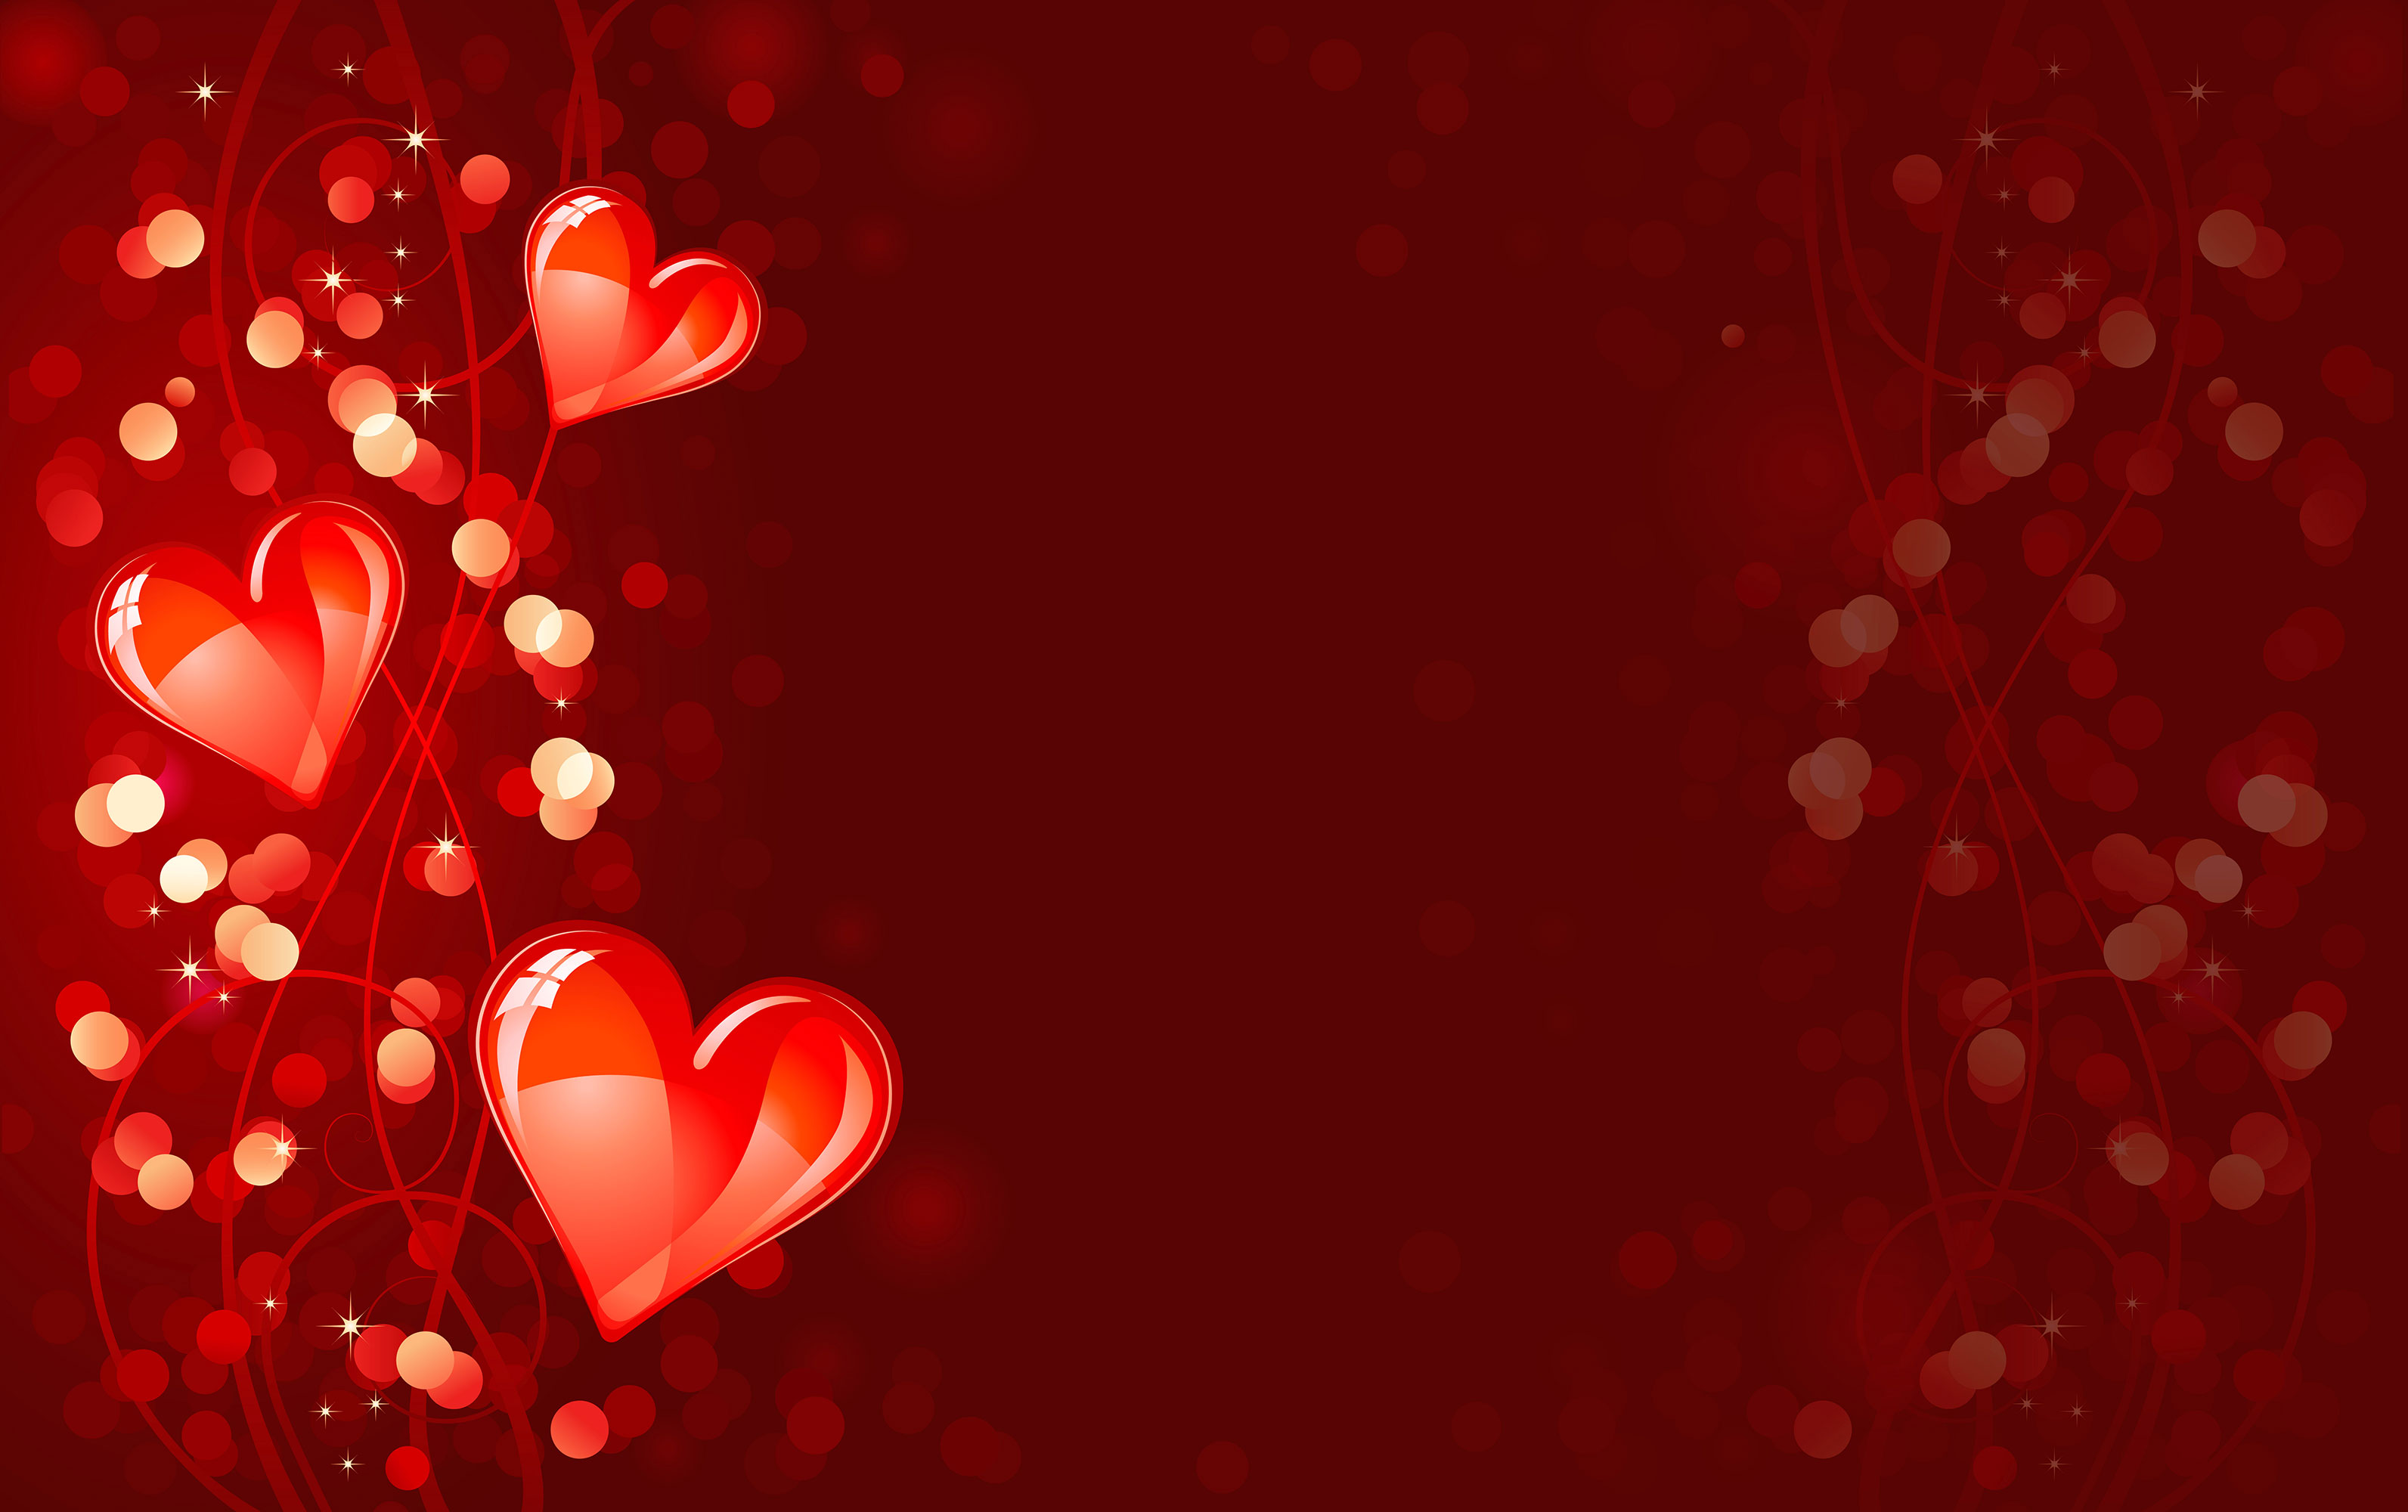 Love Wallpapers - HD Desktop Backgrounds - Page 6